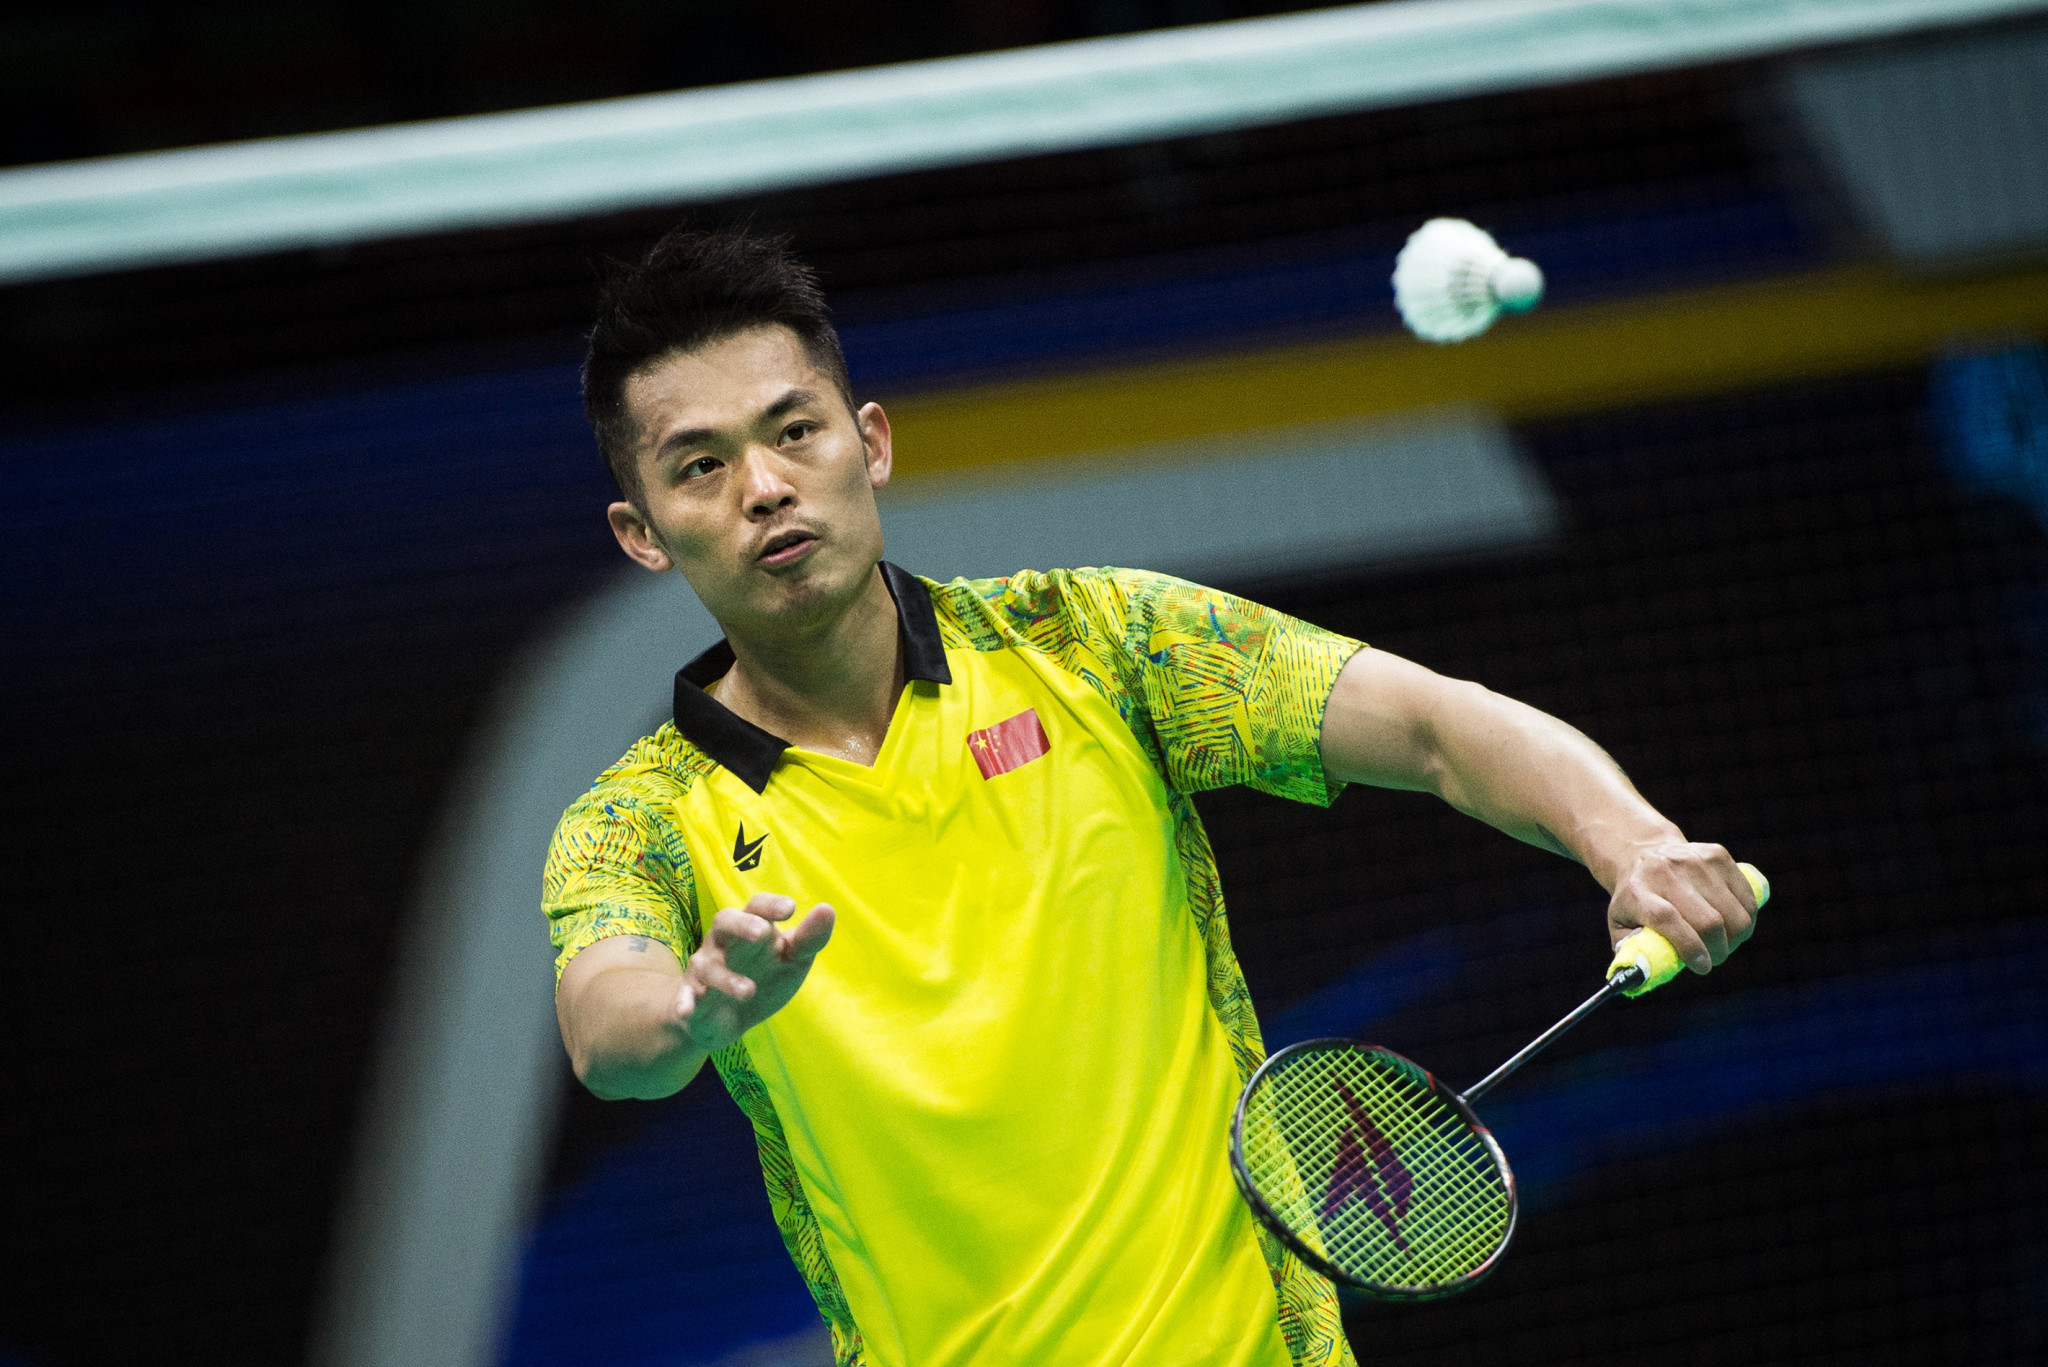 Lin Dan is the top seed in the men's singles tournament ©Getty Images